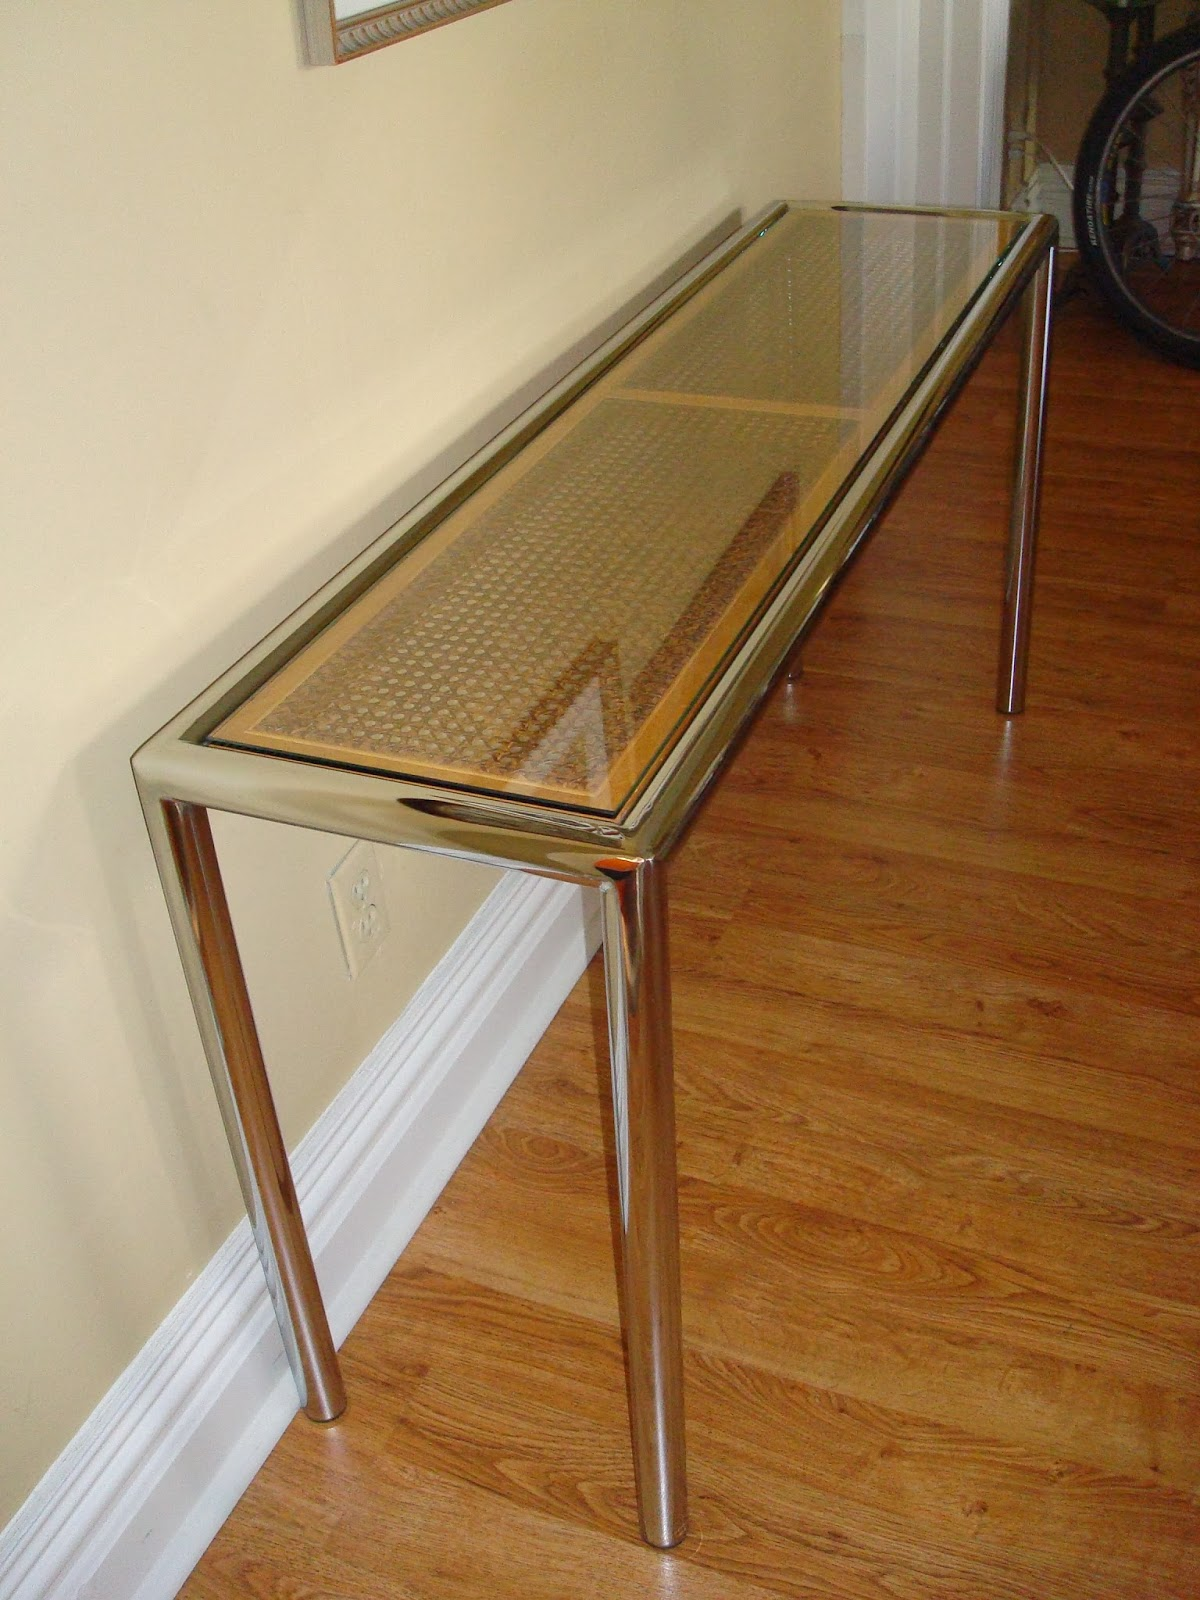 Chrome Sofa Table Image Collections Decoration Ideas